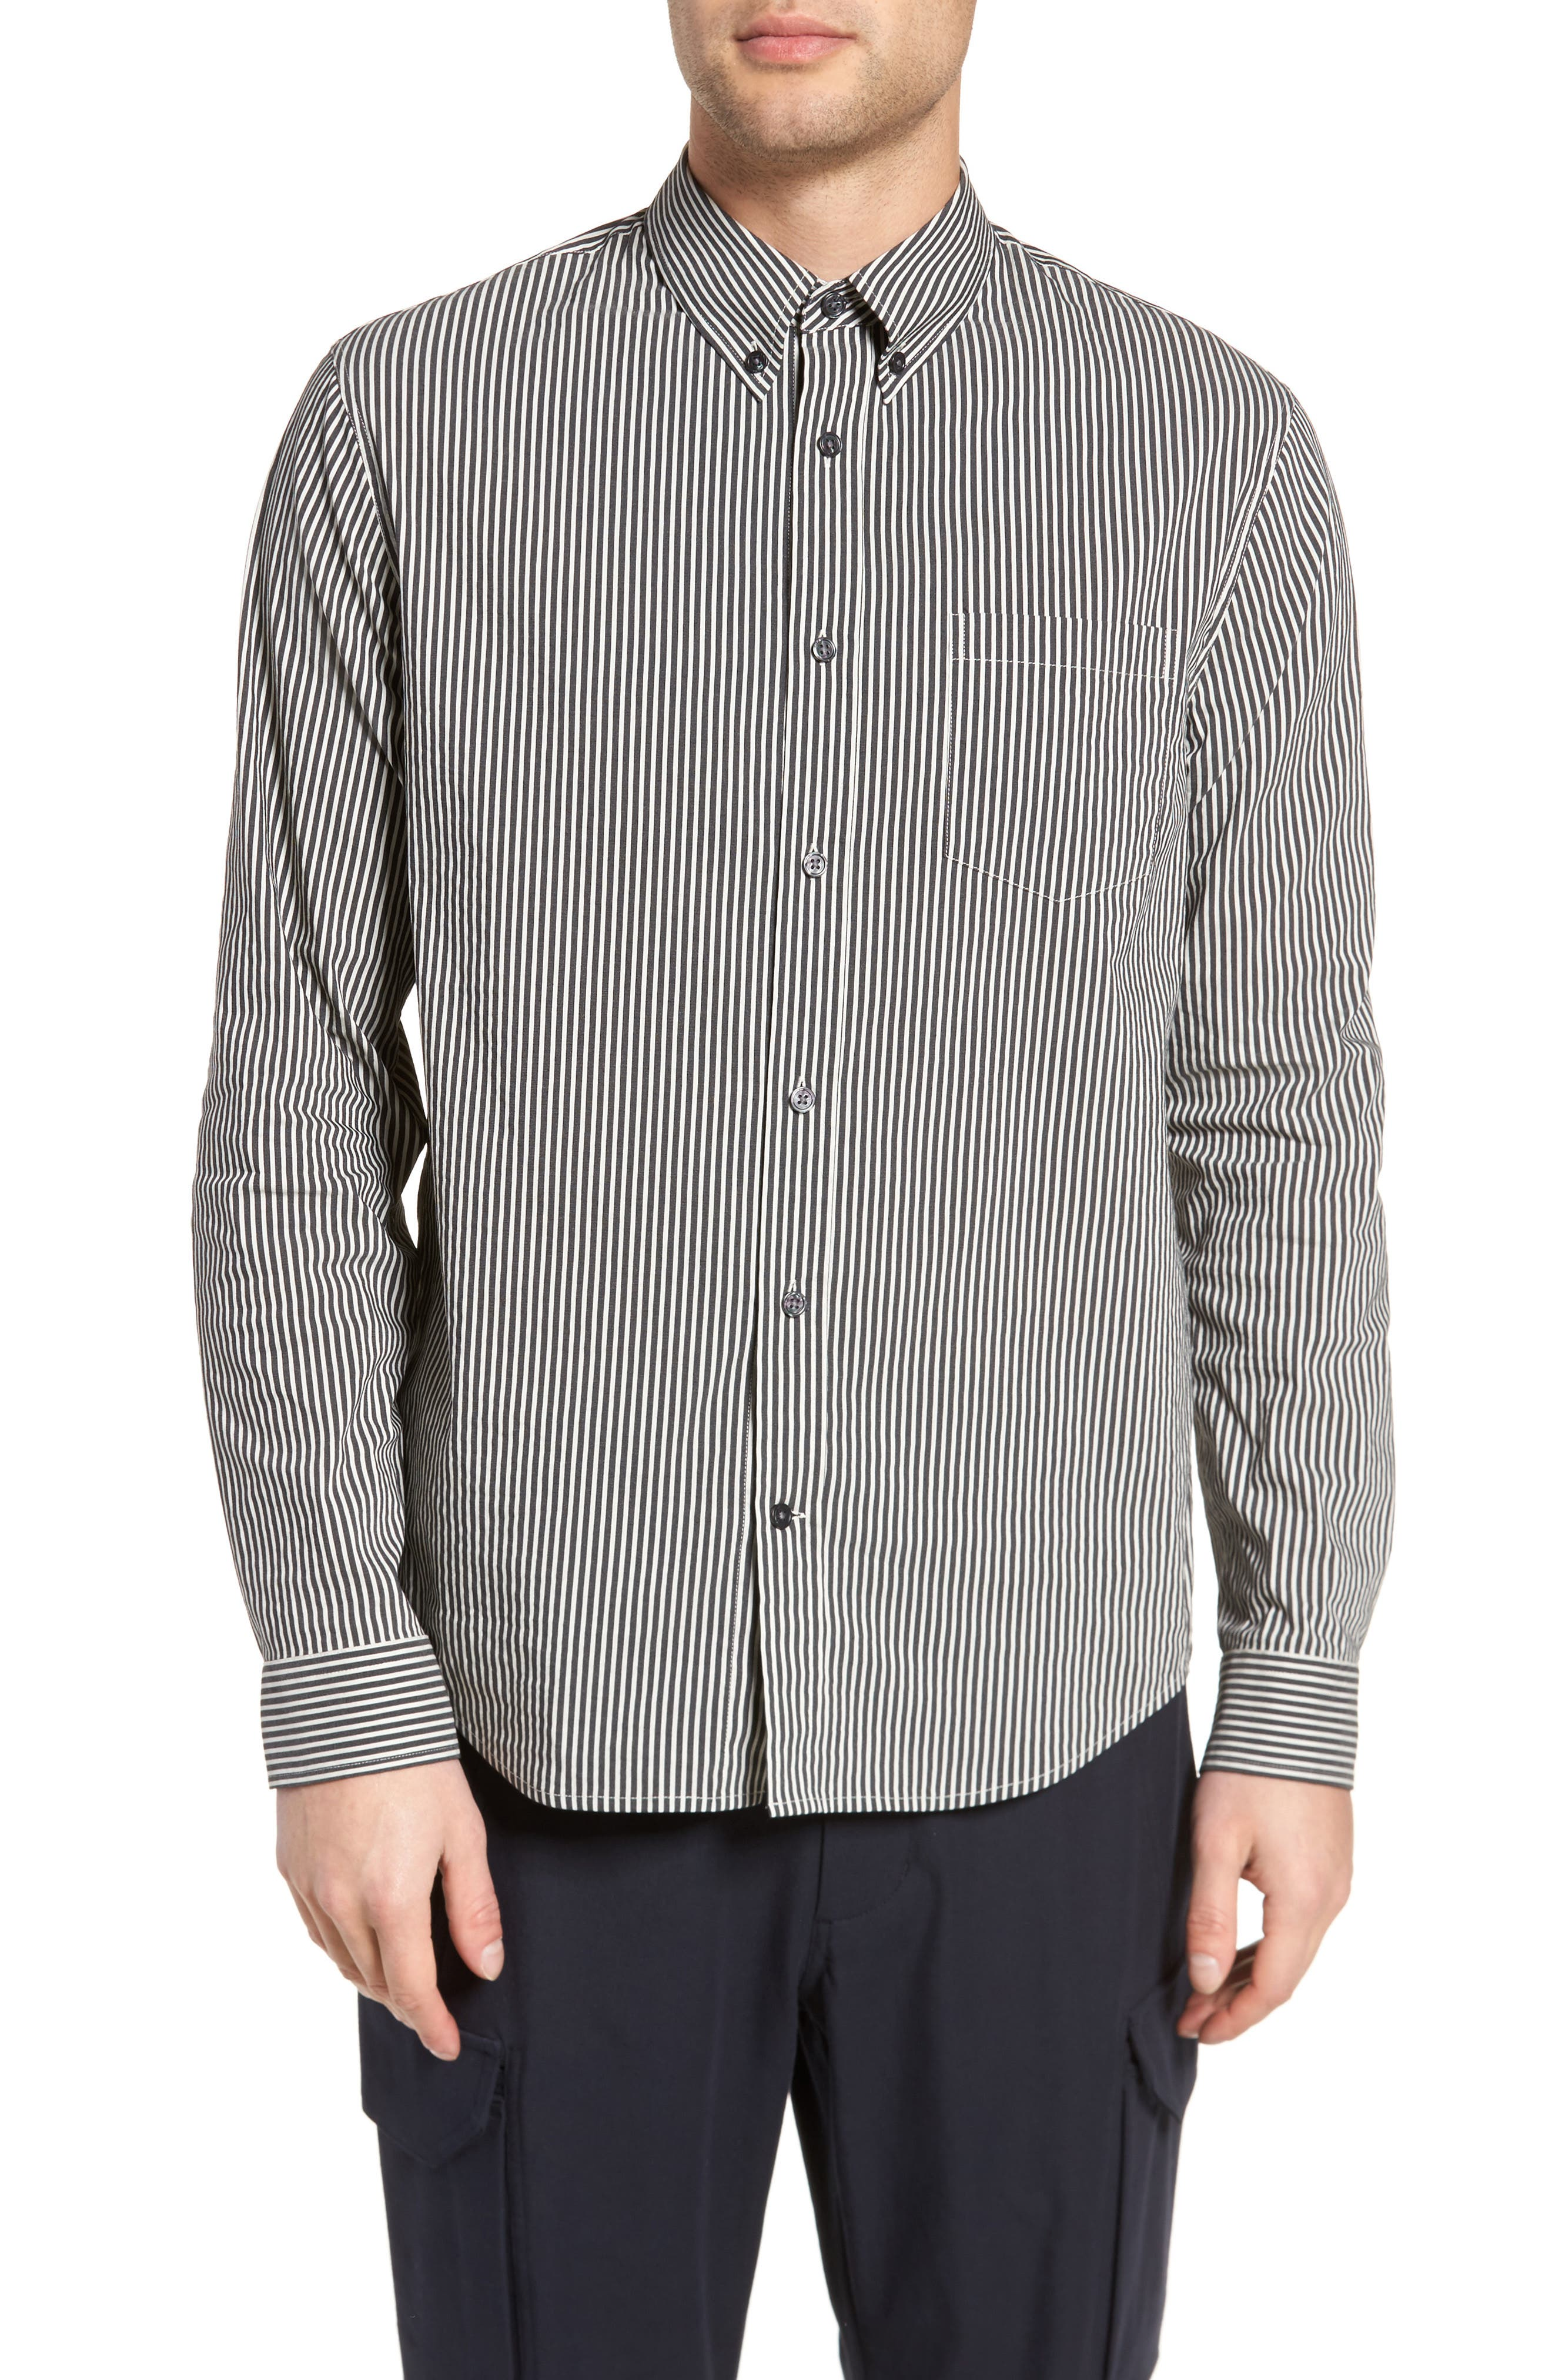 Bar Stripe Sport Shirt,                         Main,                         color, Black/ Stormy White